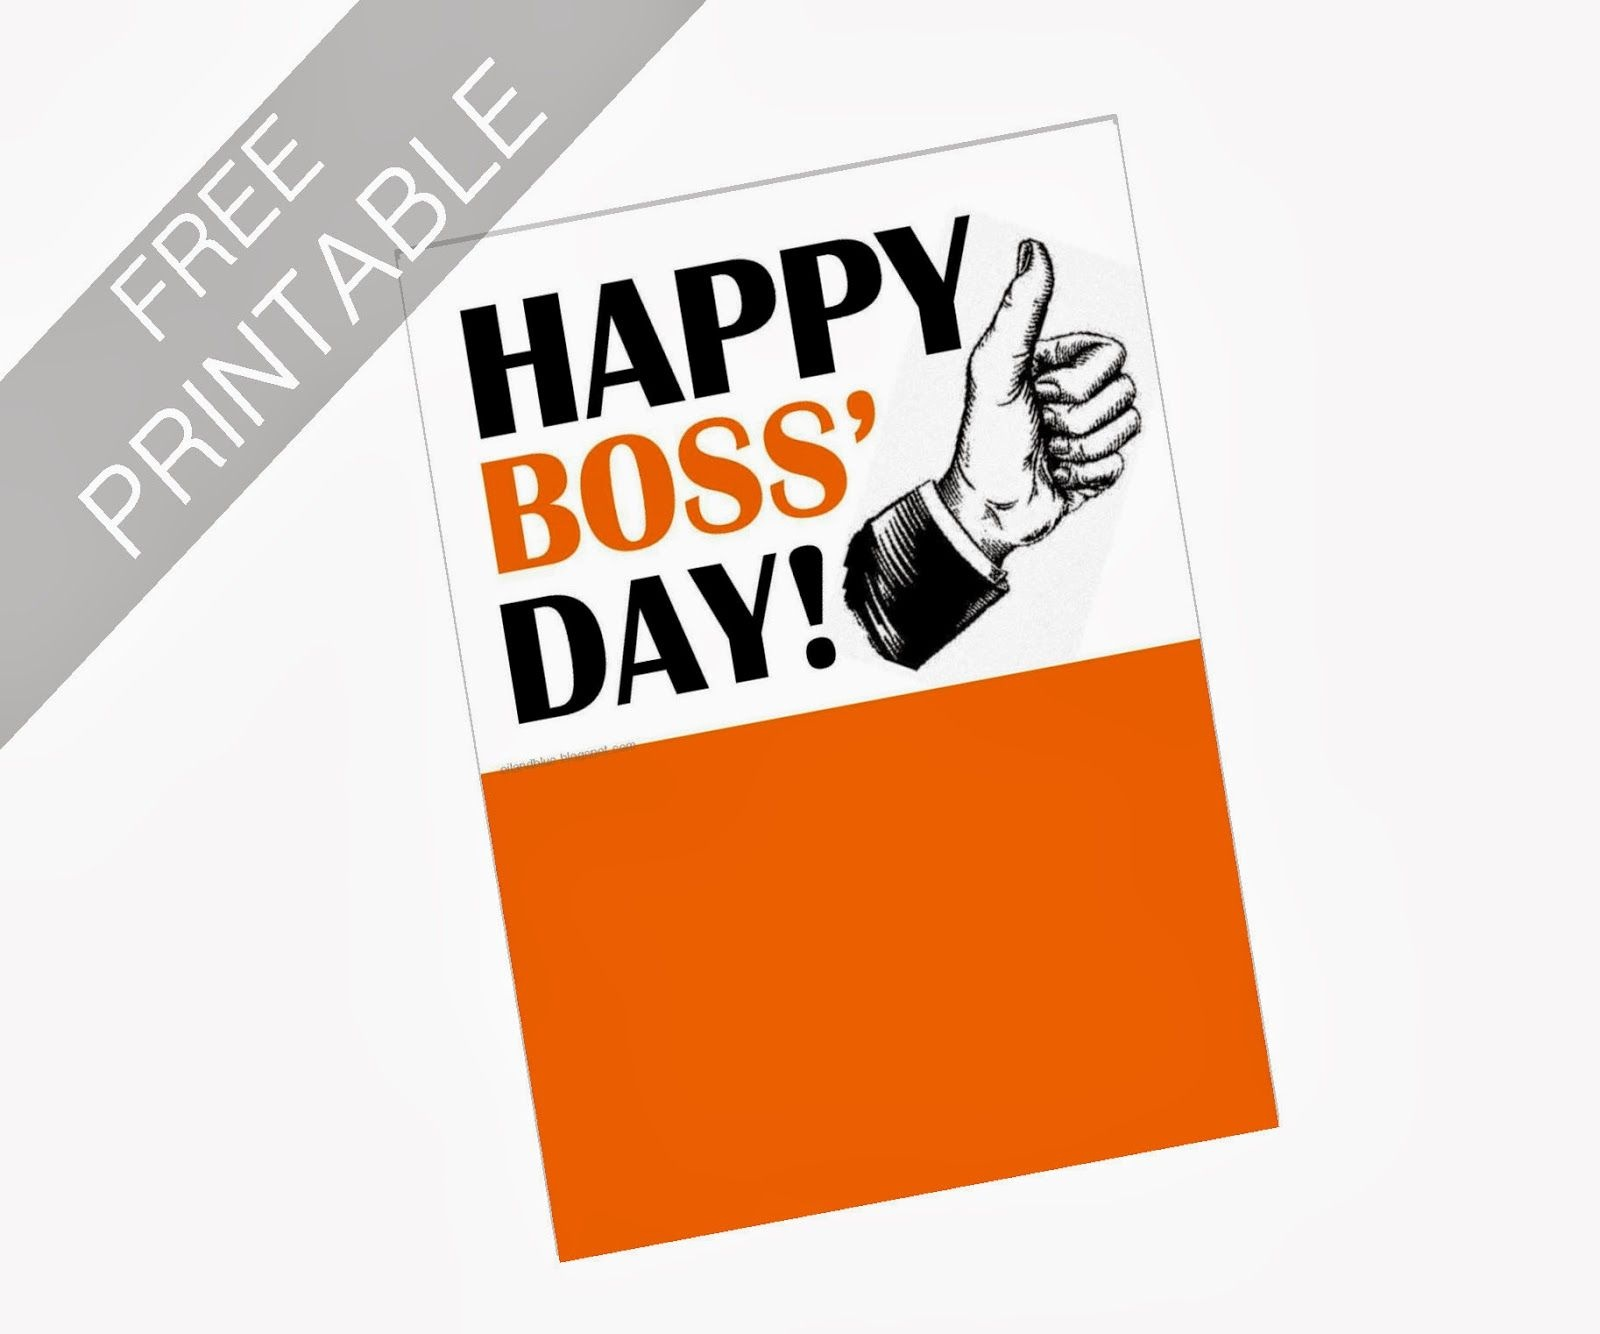 Oil And Blue: Free Printables - Happy Boss' Day Card | Party Ideas - Happy Boss Day Cards Free Printable